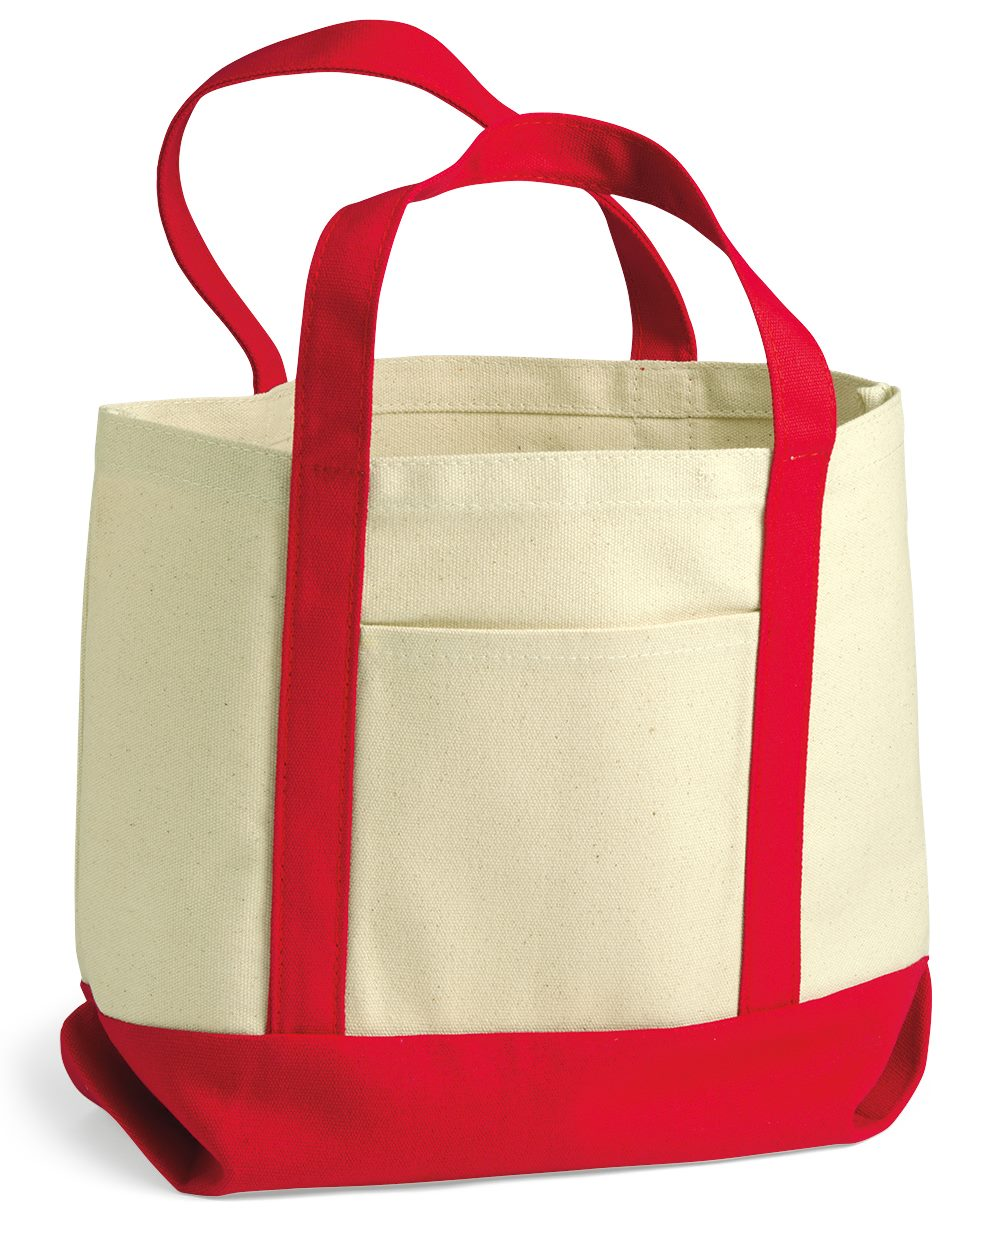 Liberty Bags 8867 - 11 Ounce Small Cotton Canvas Boater Tote